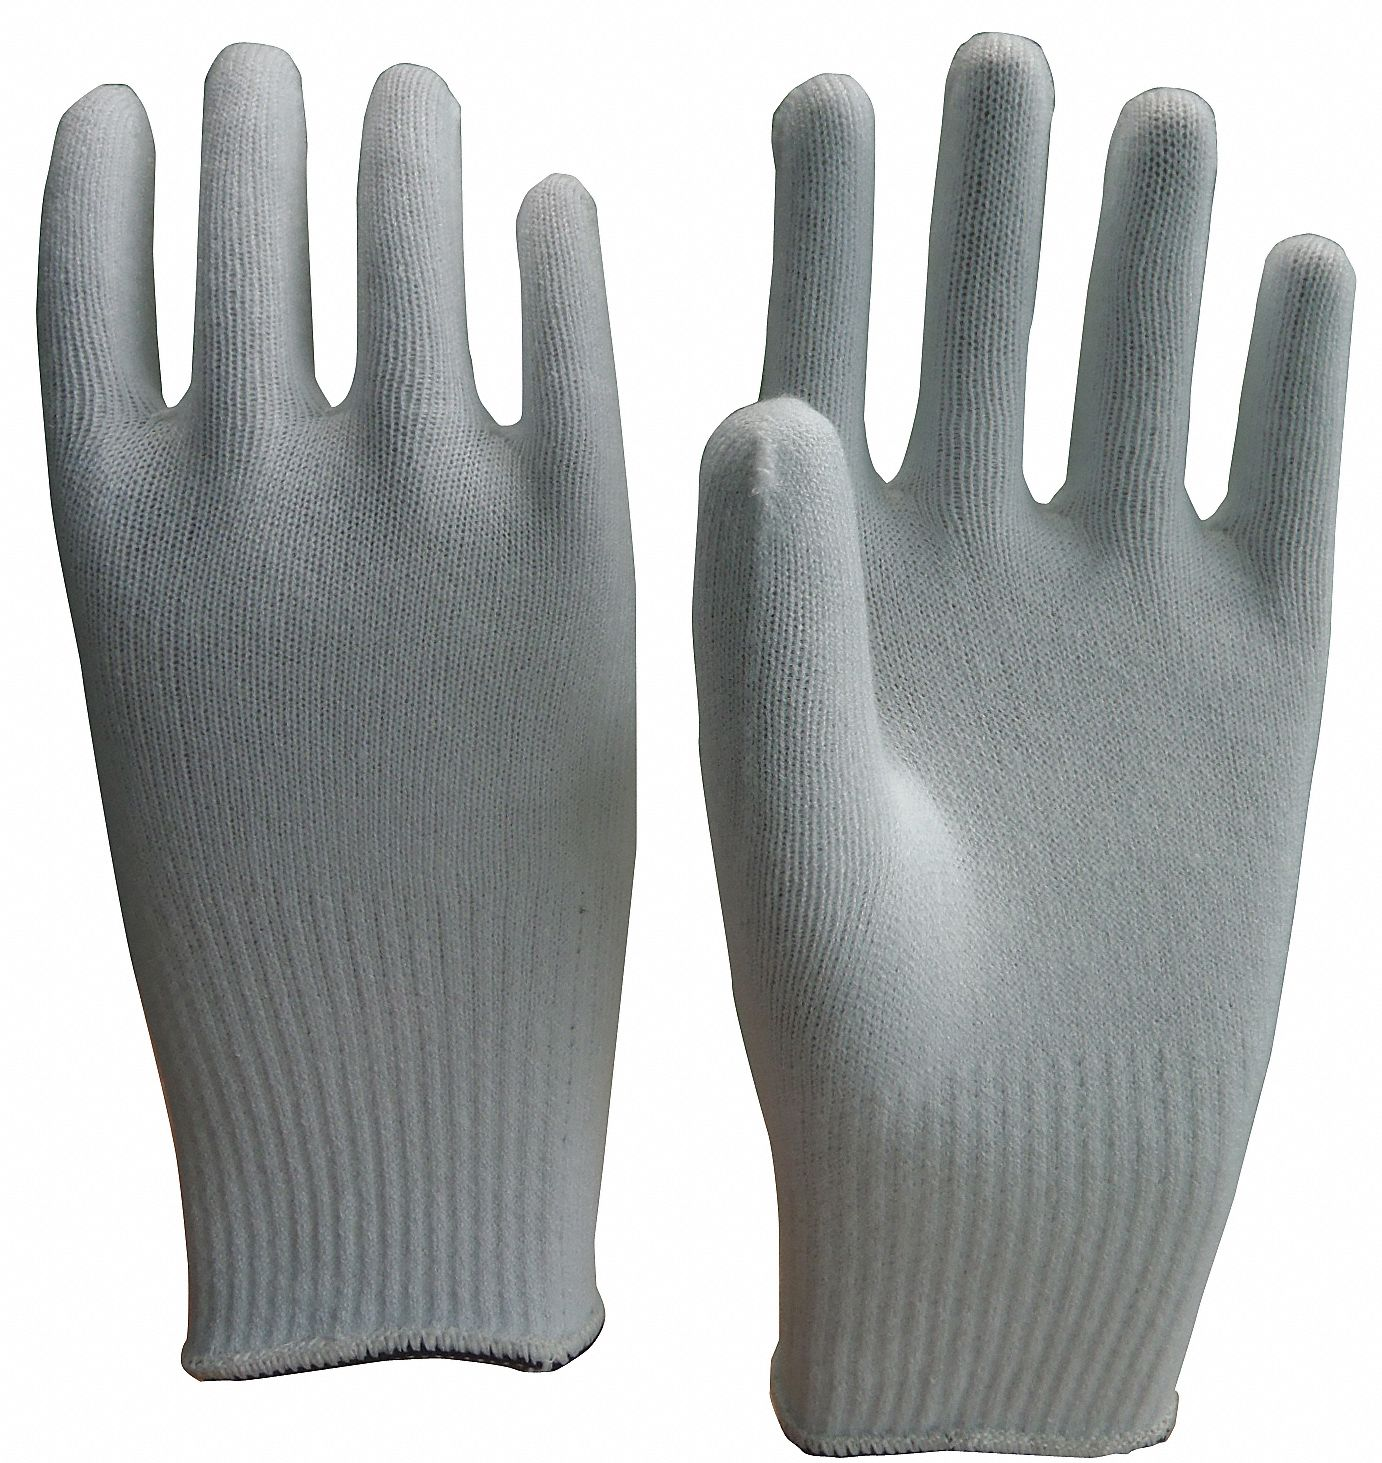 Inspection Gloves And Glove Liners